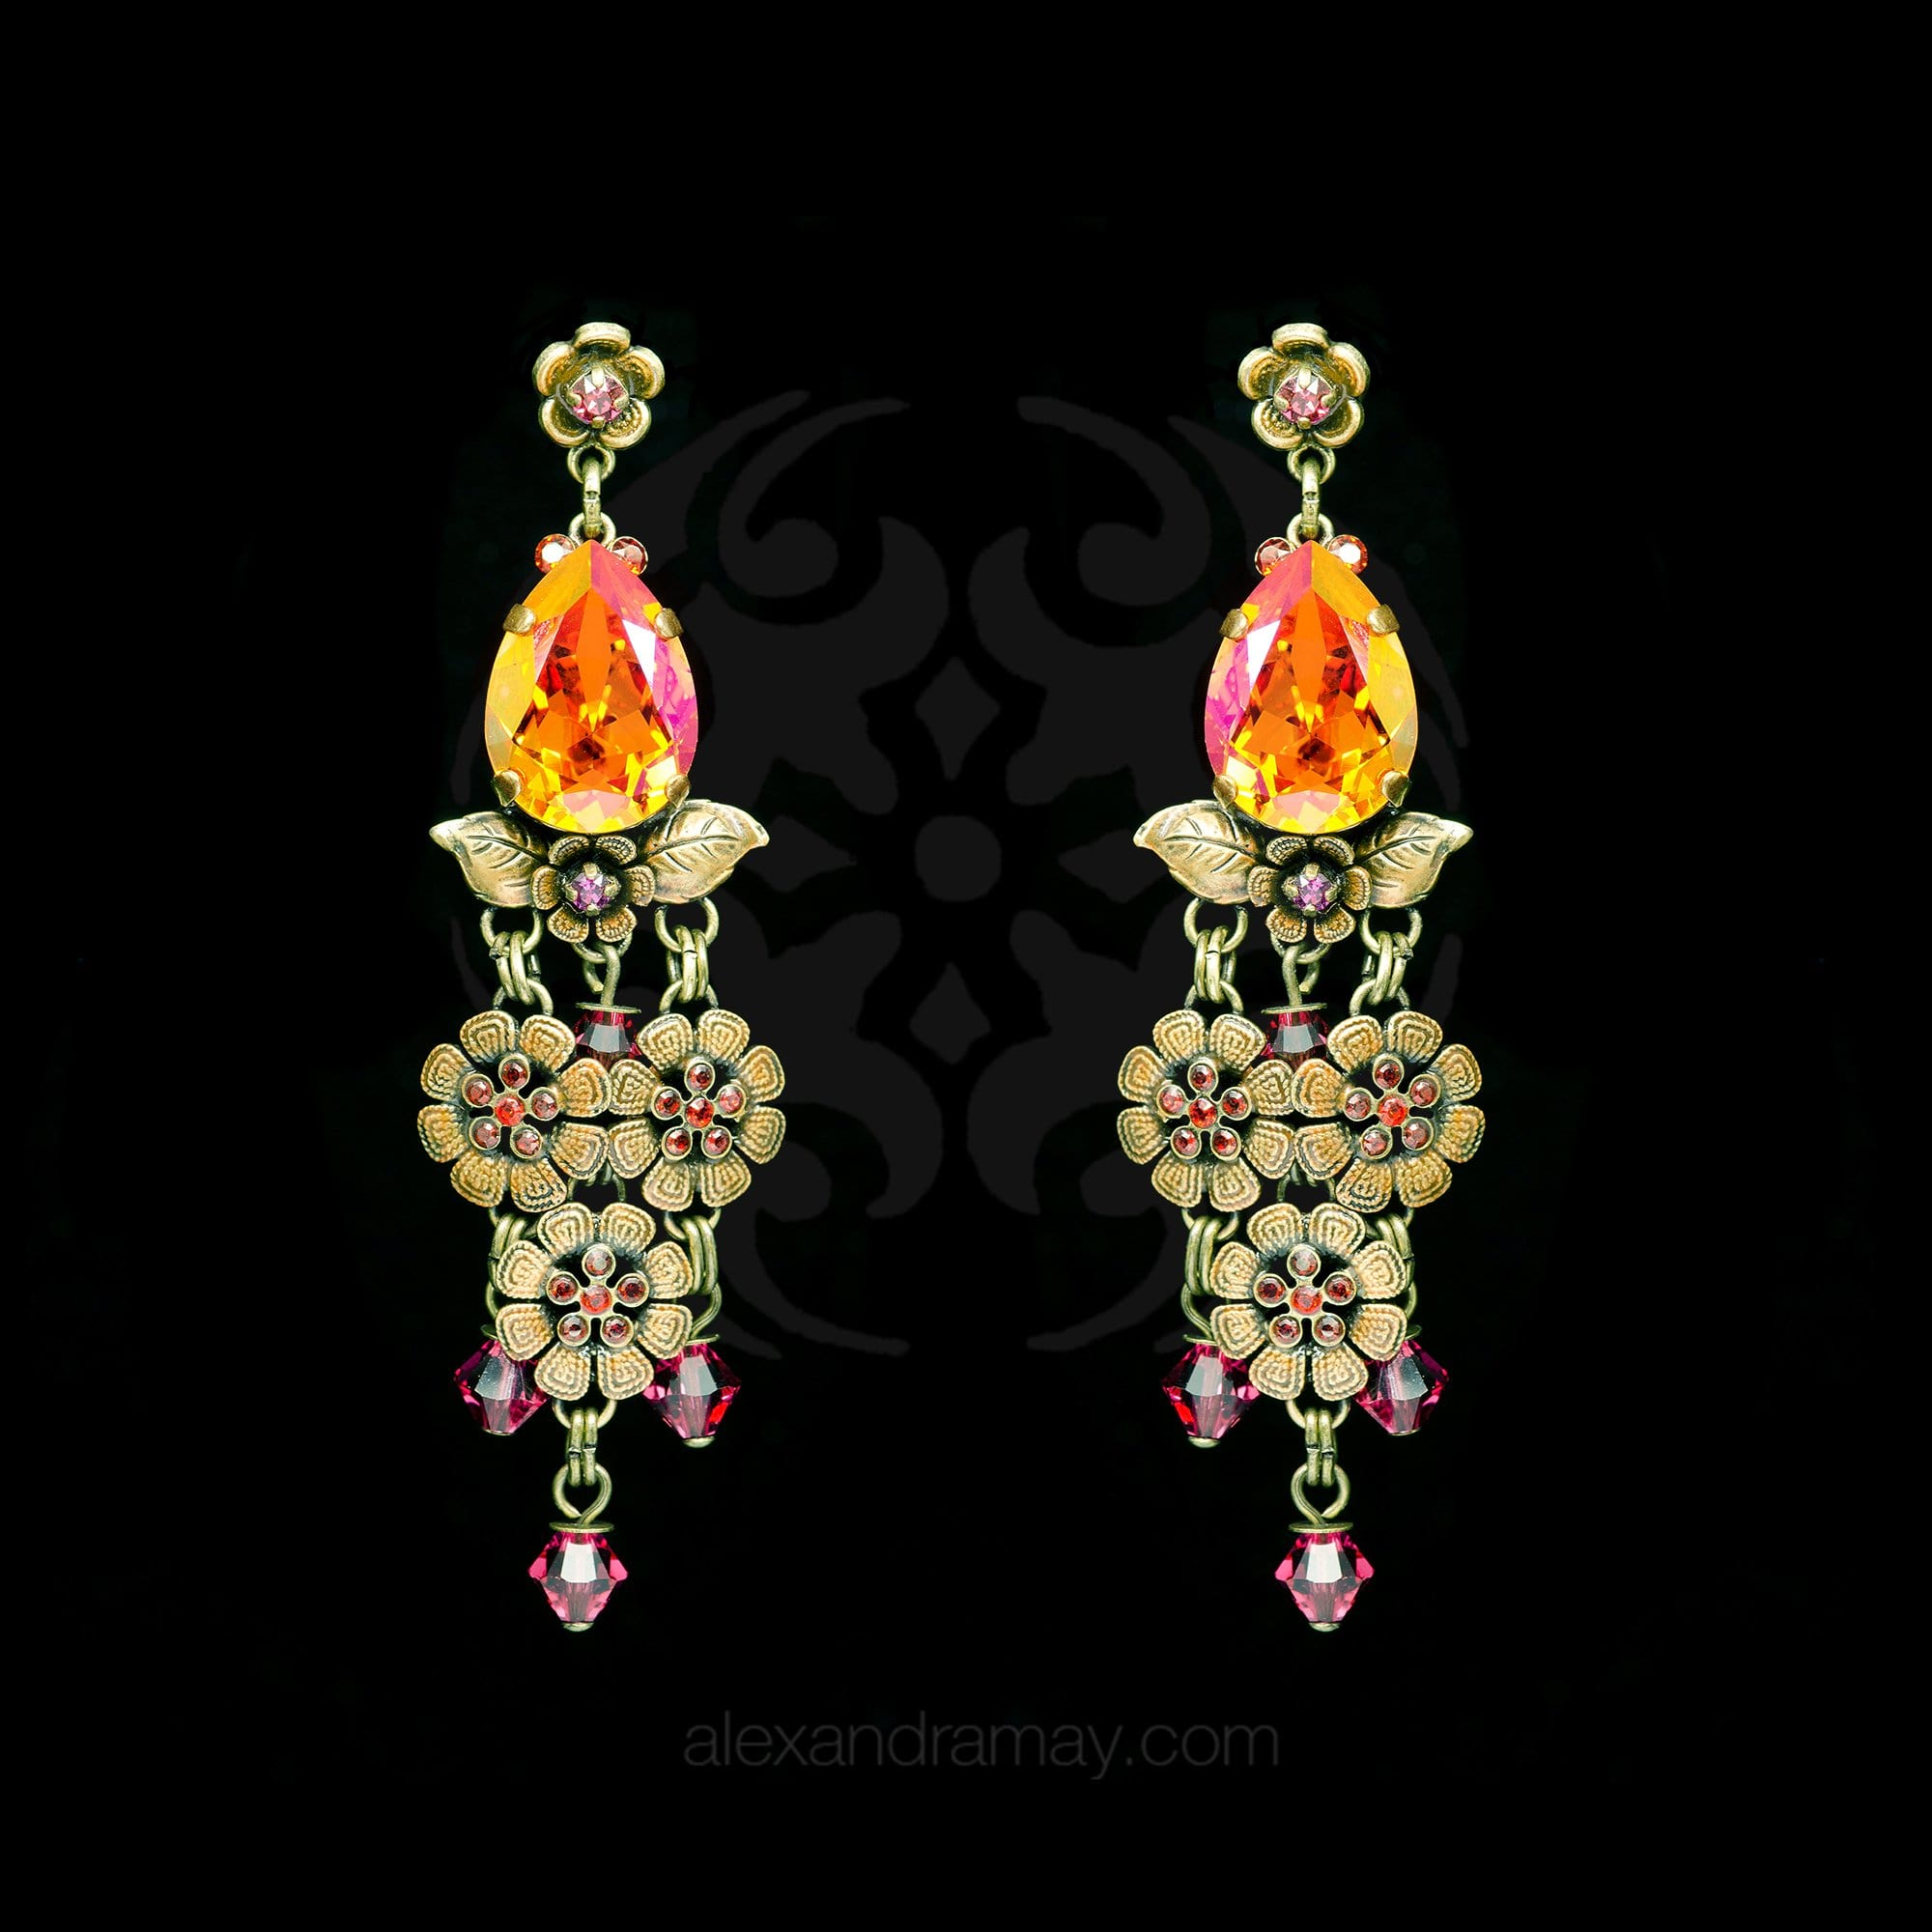 Konplott 'Eternal Glory' Orange & Pink Chandelier Earrings (179940)